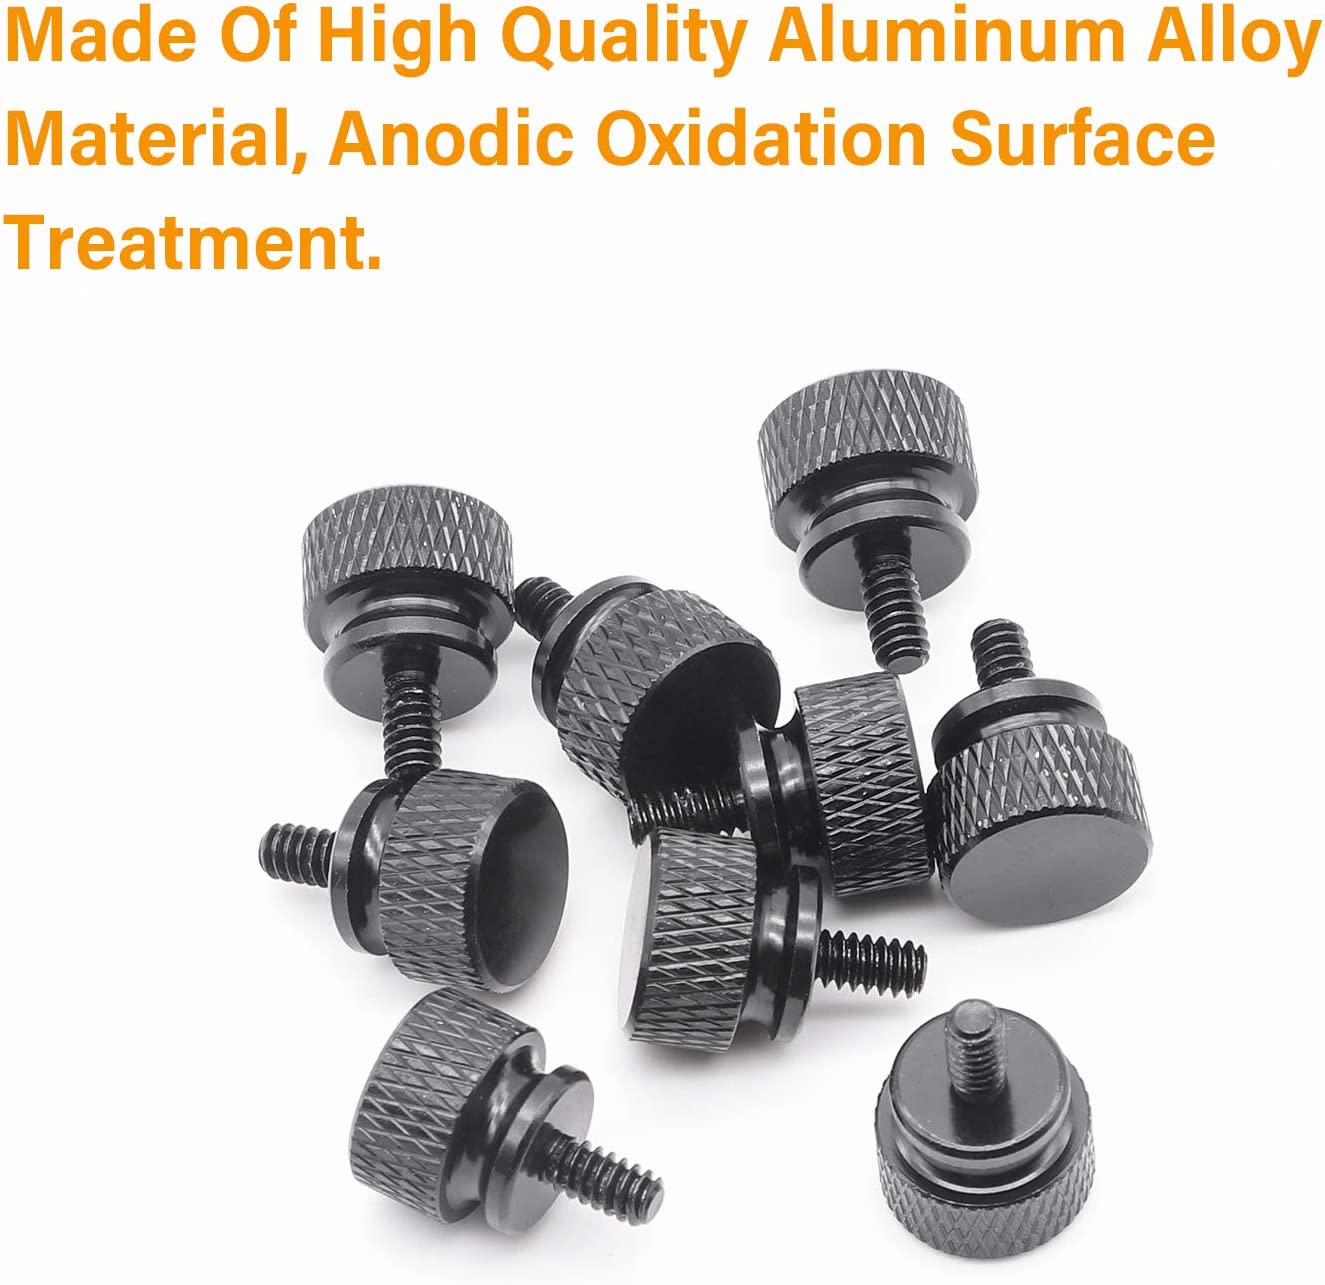 Box Qty 100 BC-0607TKWAL by Shorpioen 6-32X7//16 Knurled Thumb Screw with Washer Face Full Thread Aluminum